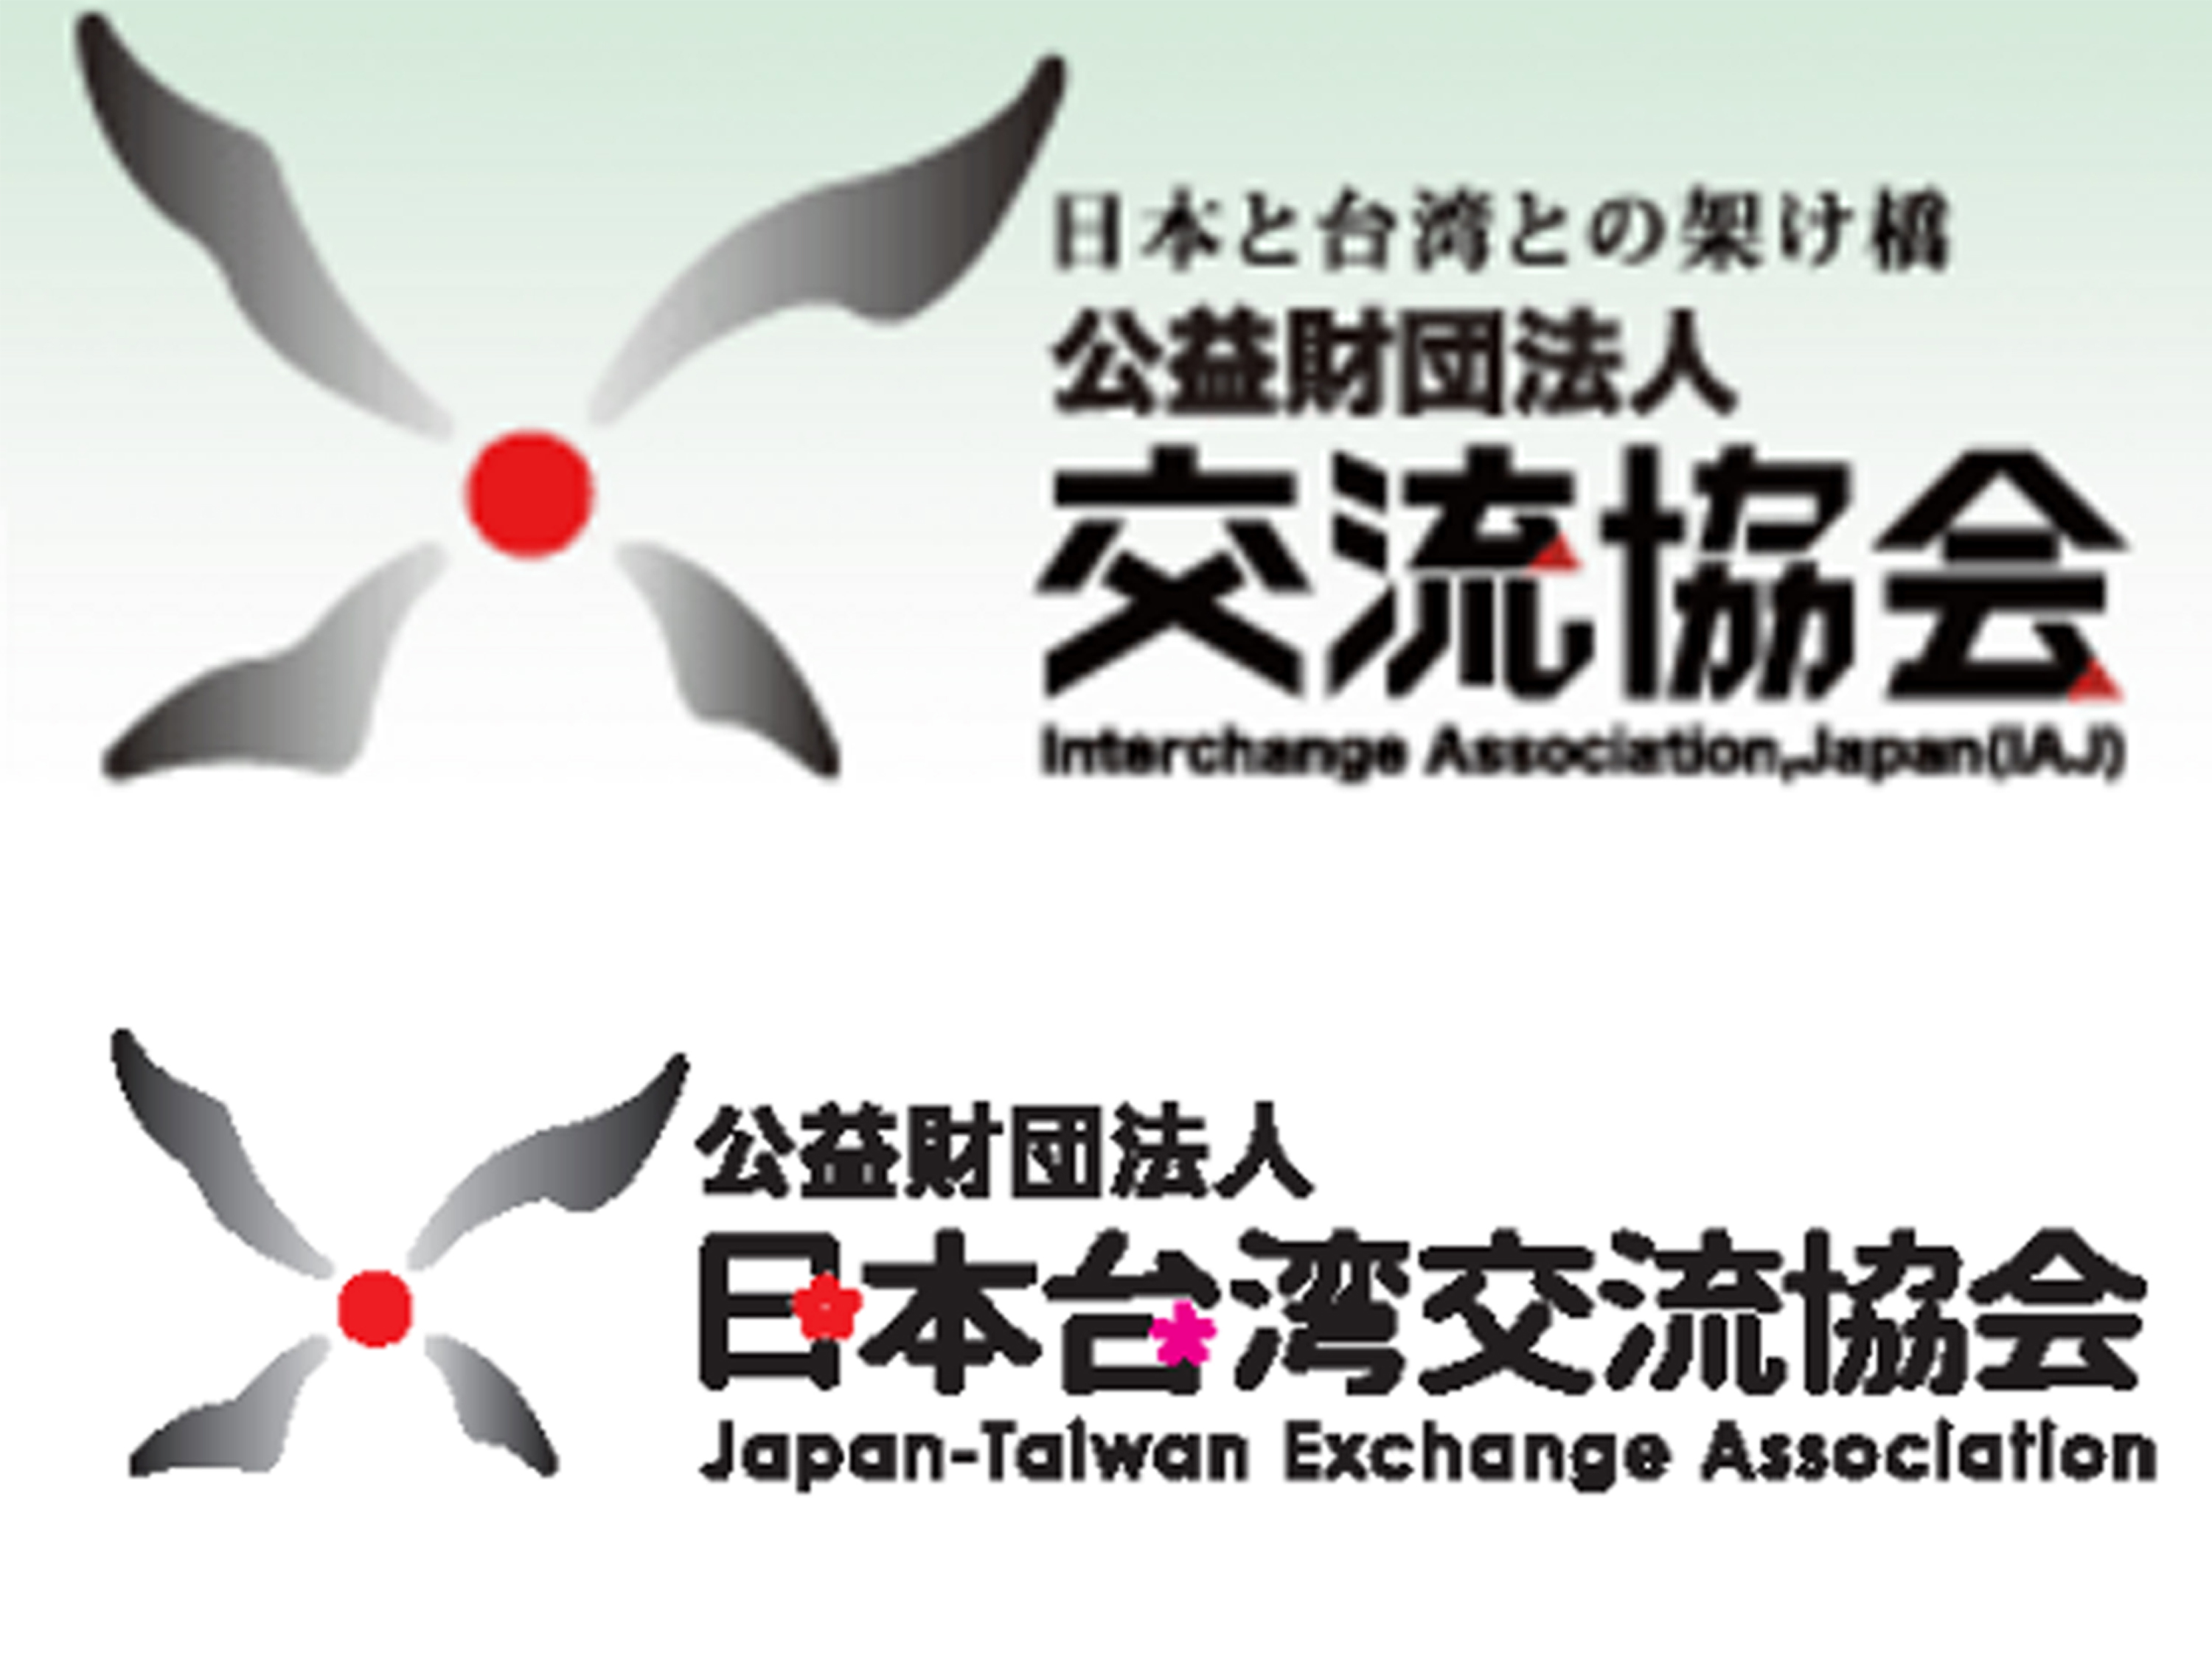 Japan adds 'Taiwan' to name of representative office